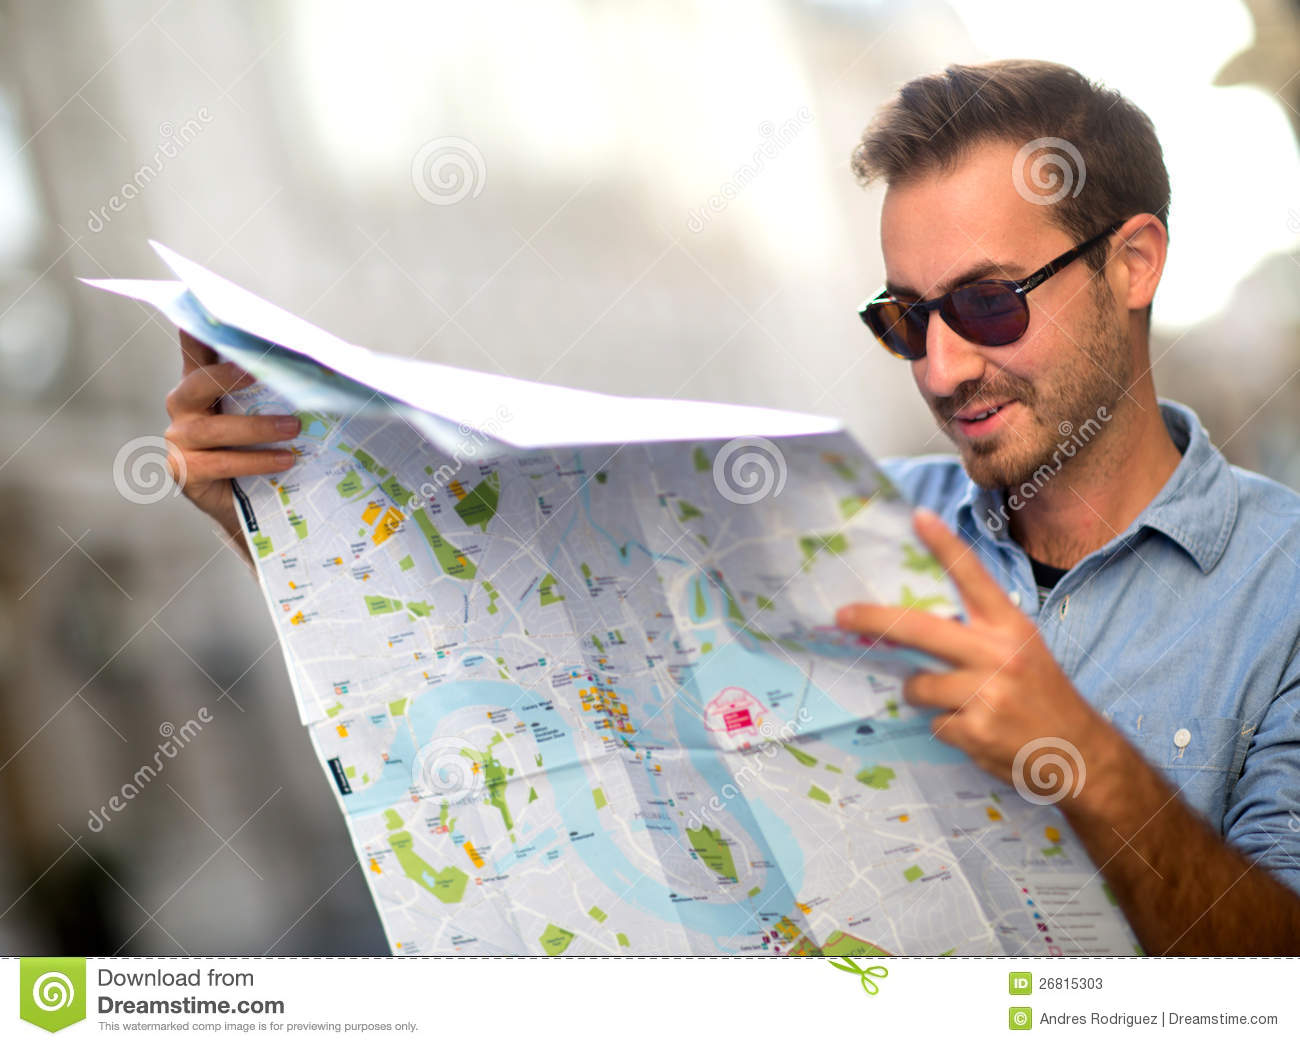 Lost person with map